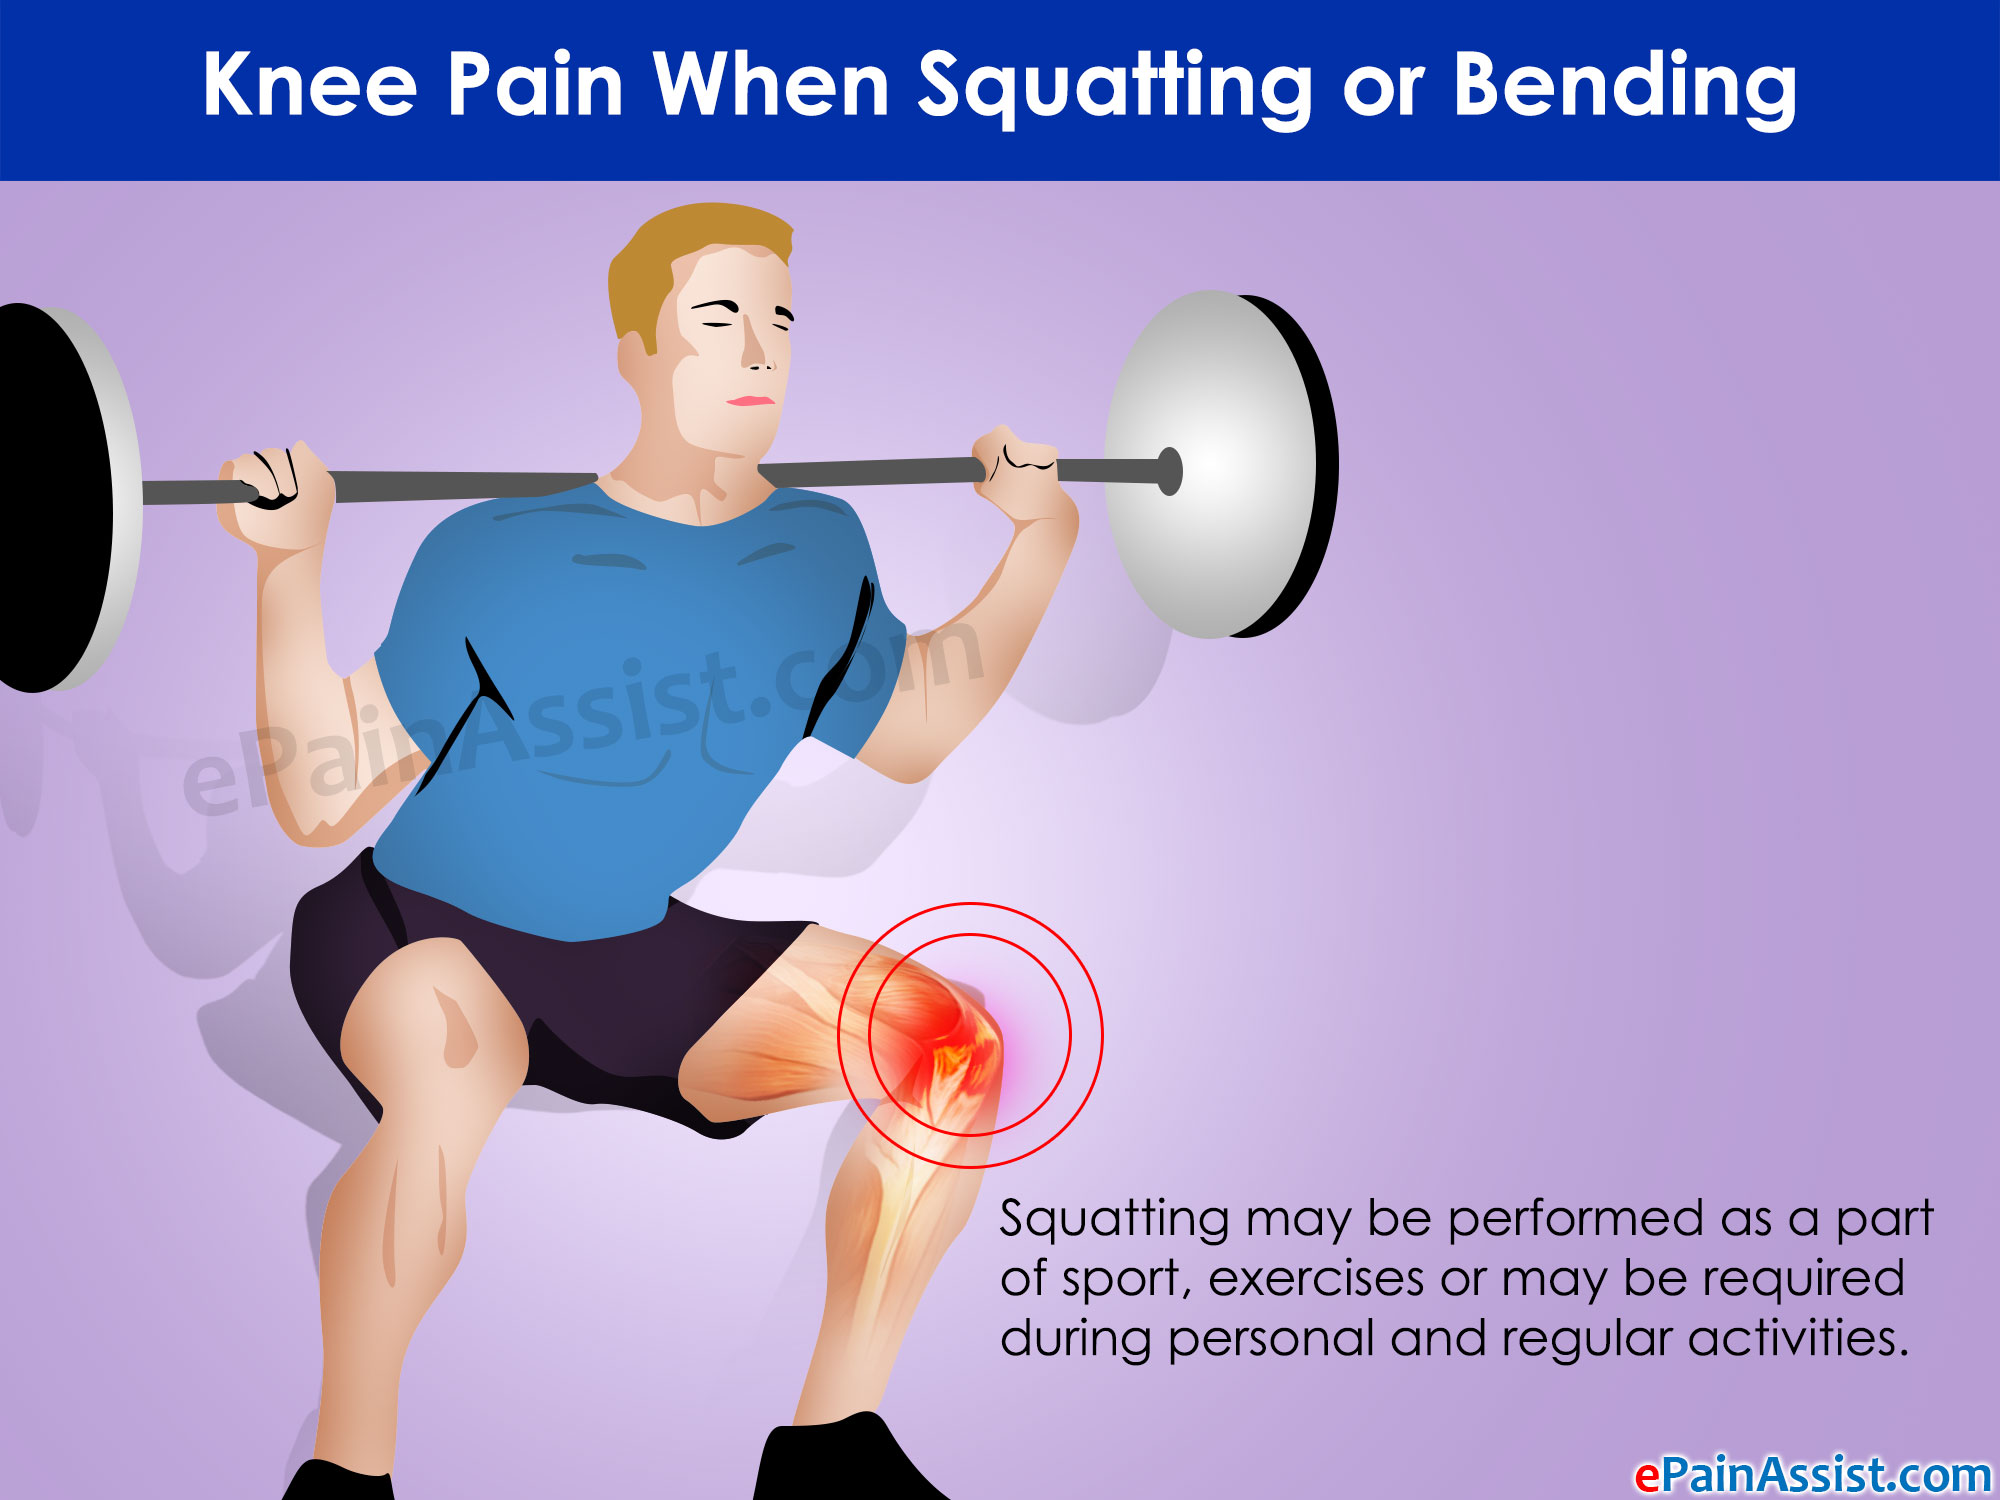 What Causes Knee Pain When Squatting or Bending?